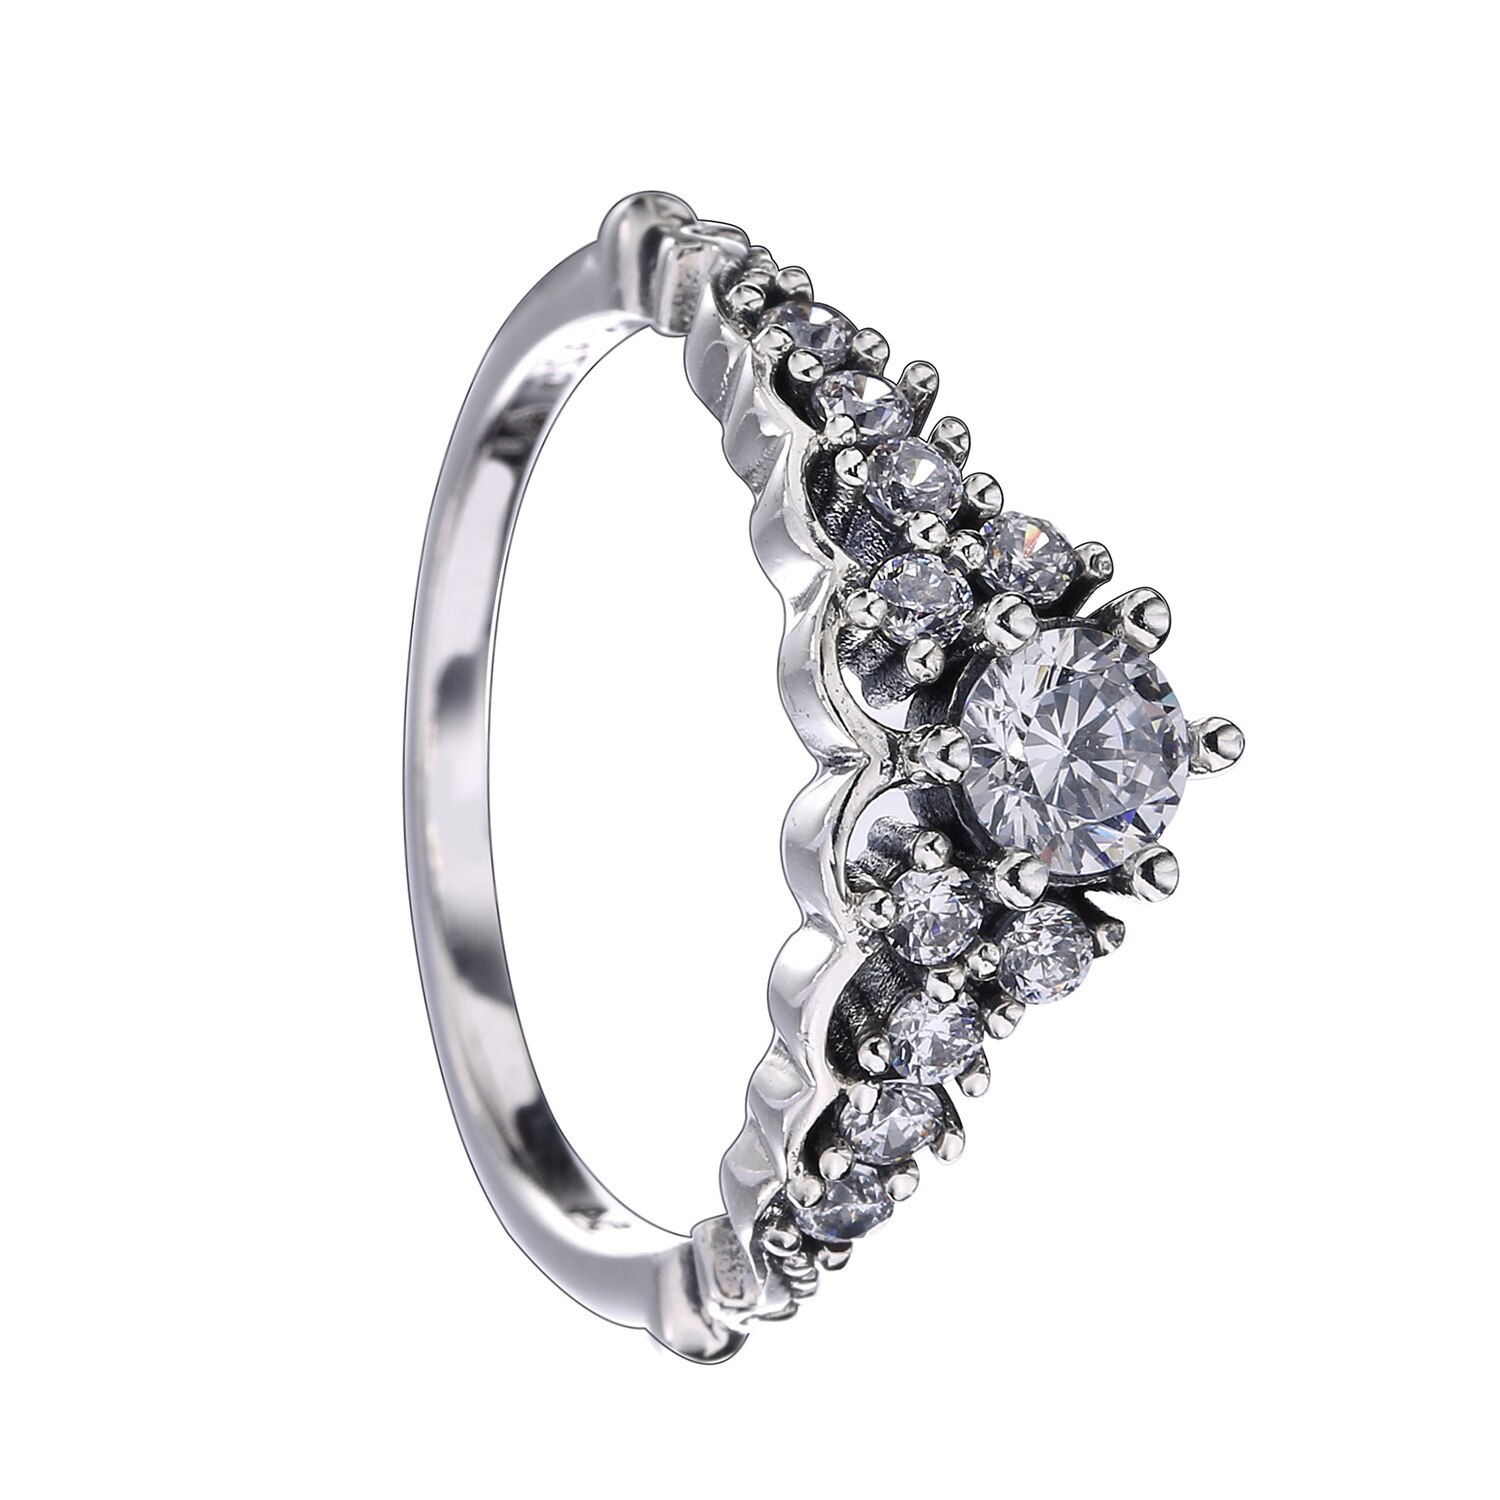 Us $6.92 30% Off|Authentic 925 Sterling Silver Pandora Ring Fairytale Tiara  With Crystal Rings For Women Wedding Gift Jewelry In Engagement Rings From With 2018 Fairytale Tiara Rings (Gallery 7 of 25)